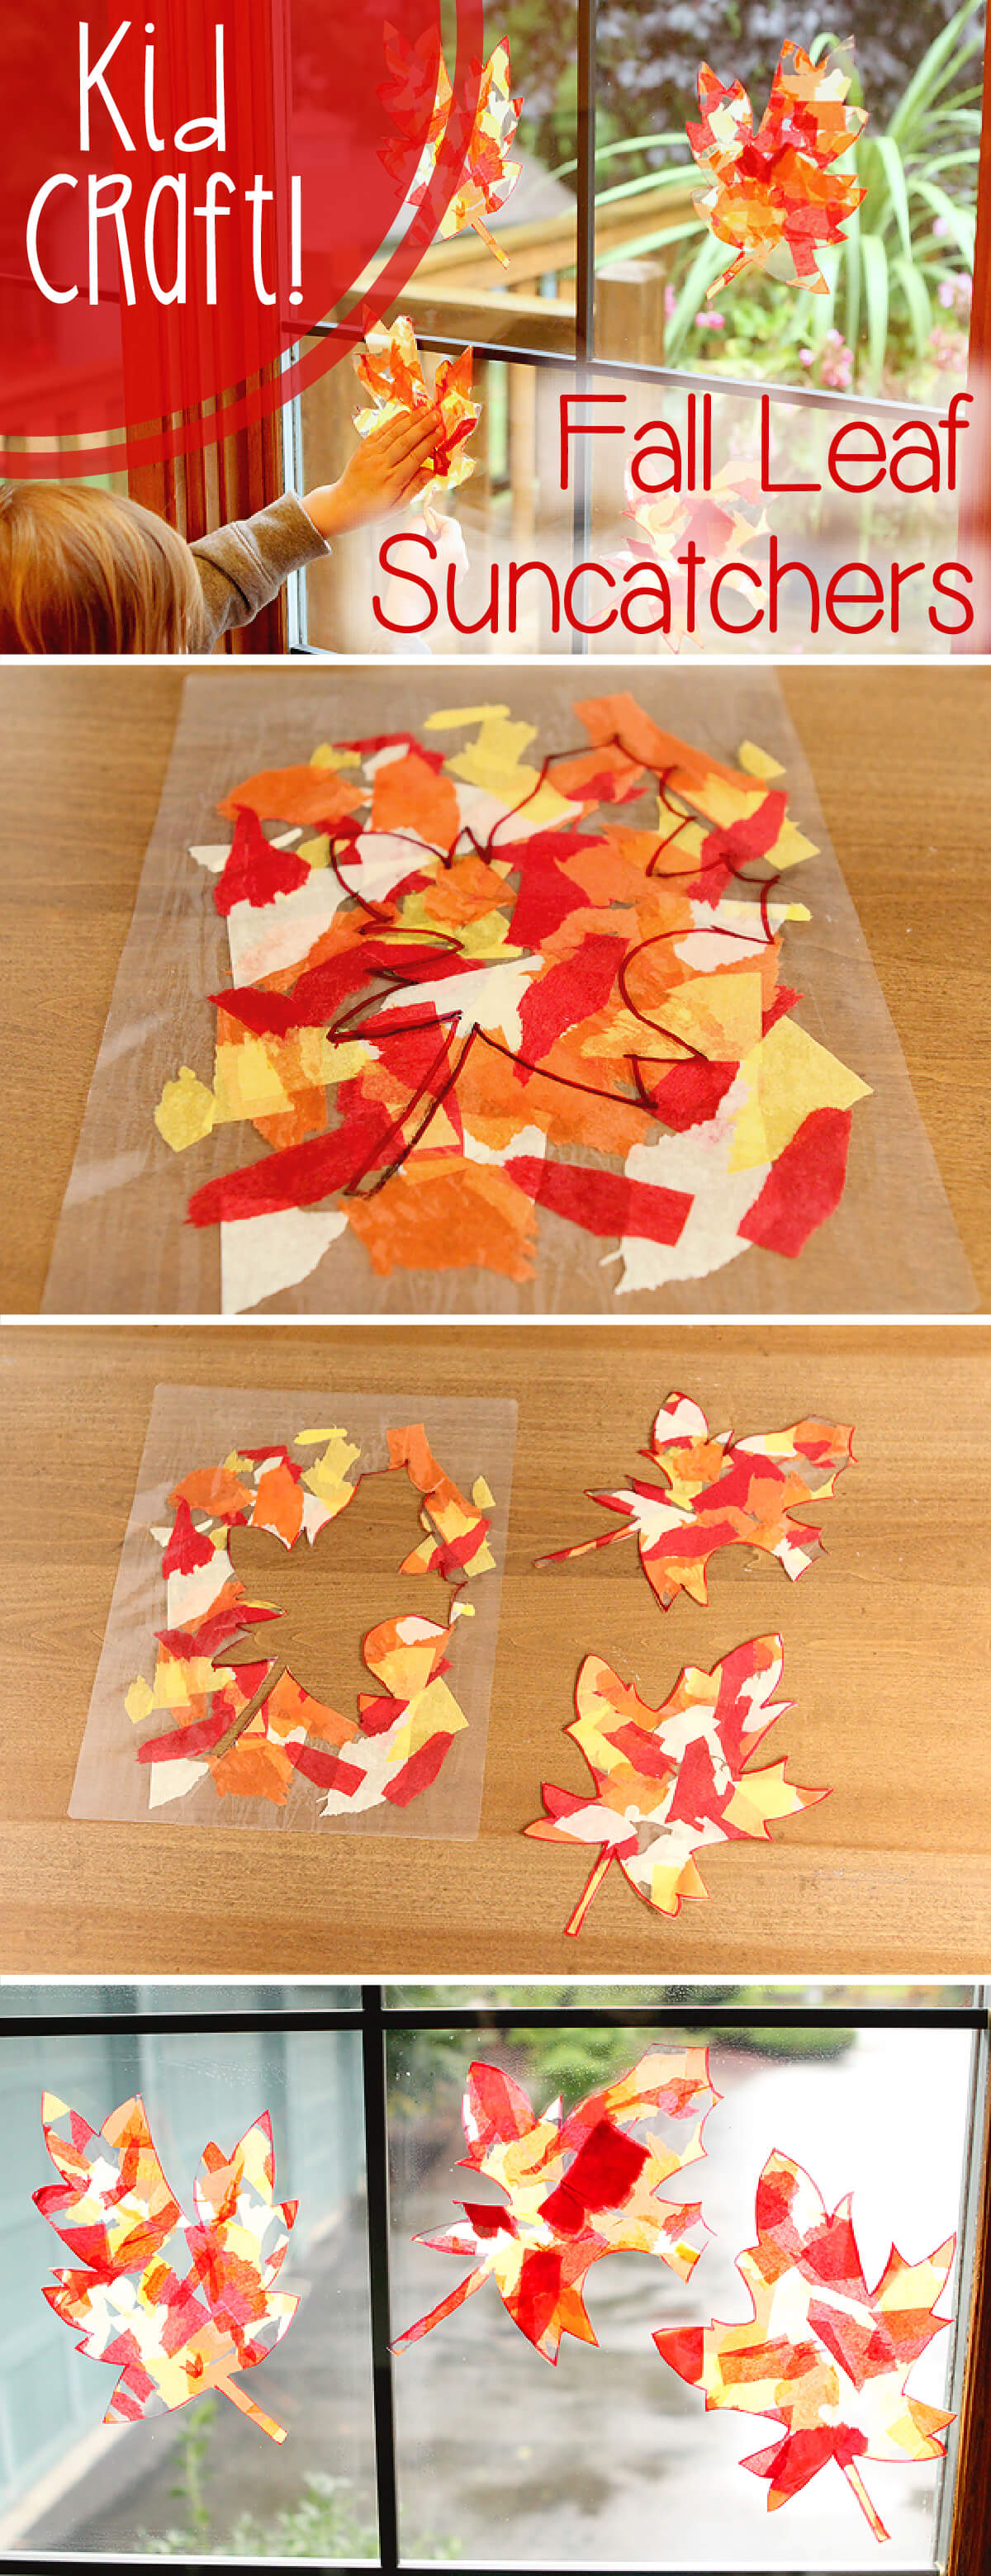 Stained Glass Effect Fall Leaf Suncatchers